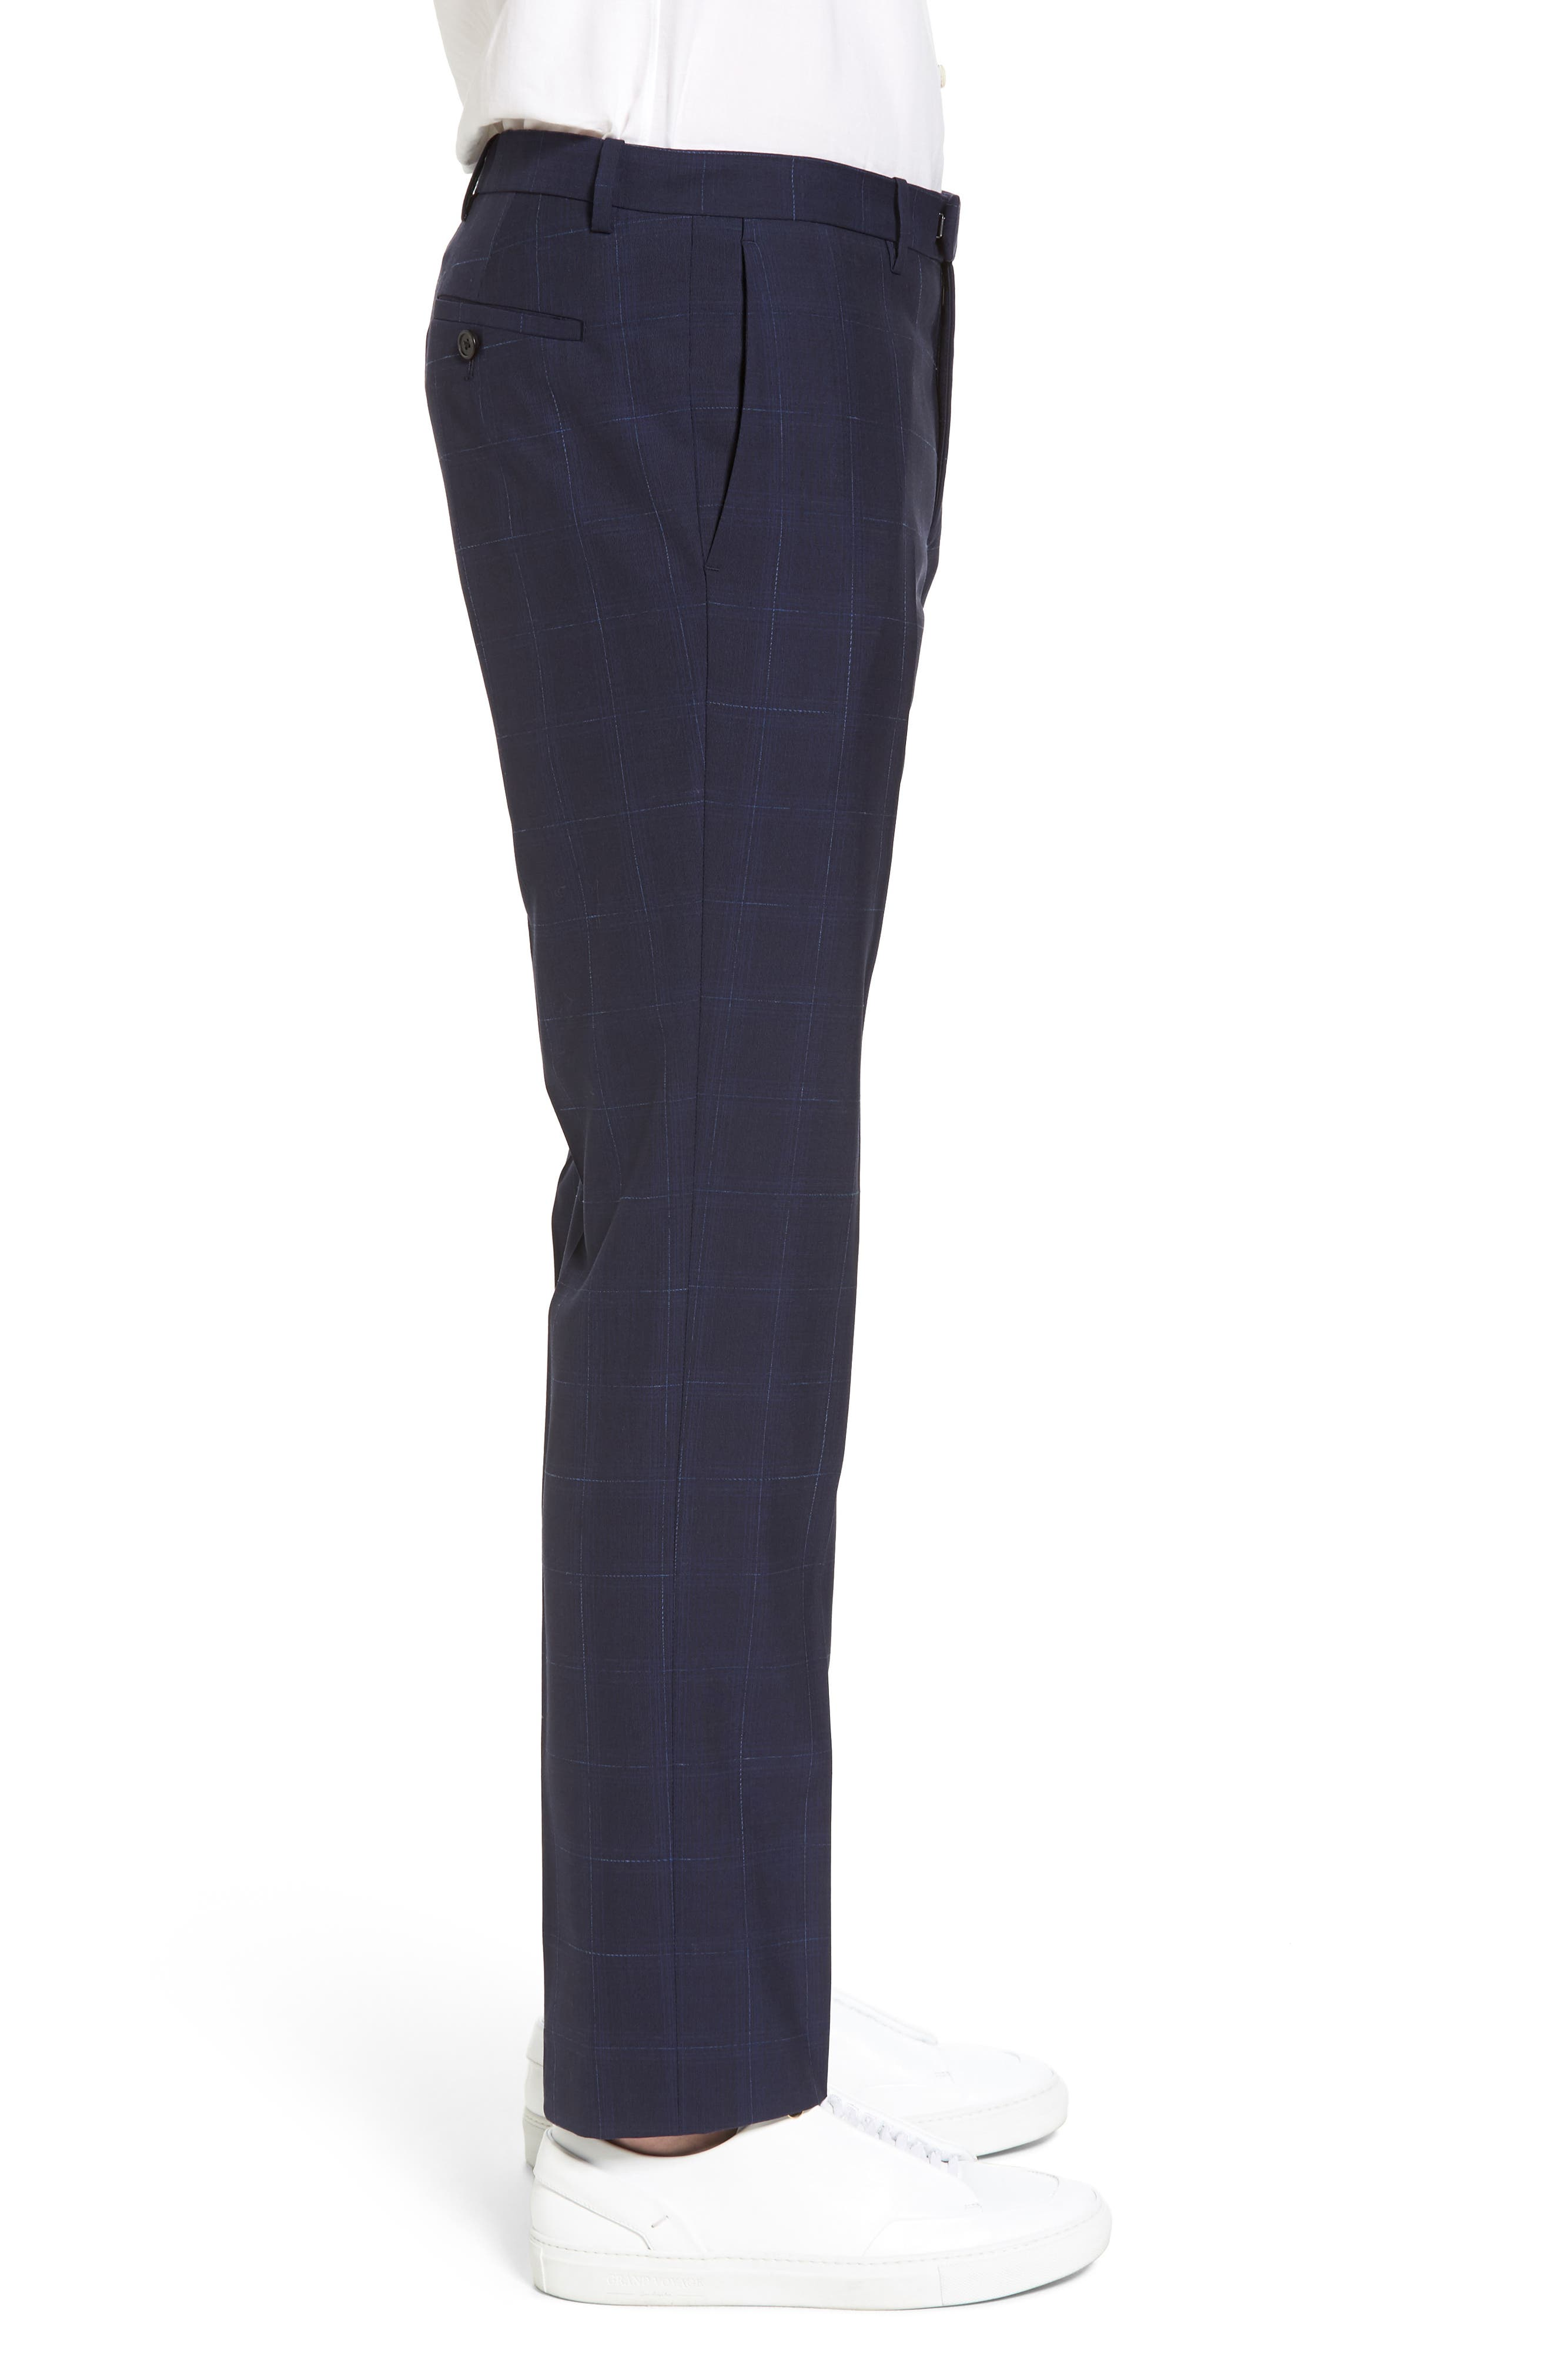 Marlo Flat Front Plaid Wool Trousers,                             Alternate thumbnail 3, color,                             497